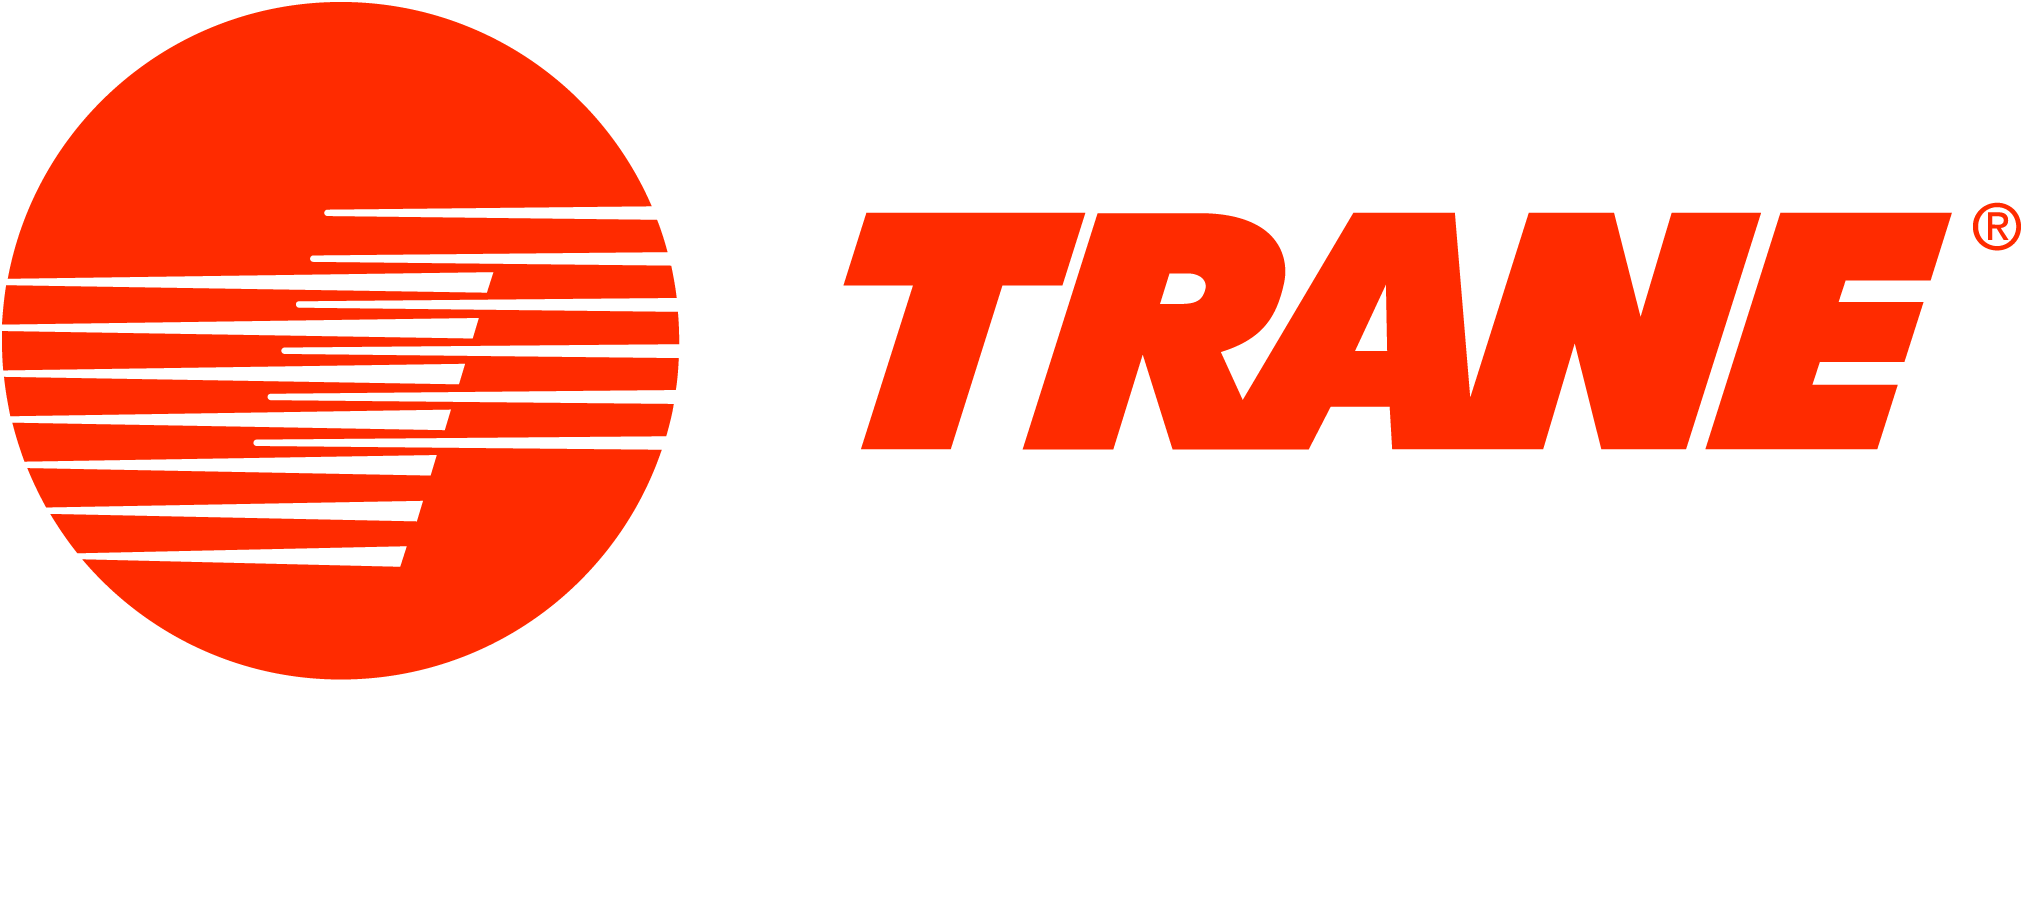 trane logo tagline quinnair heating air conditioning inc rh quinnaircolorado com trane logo decal trane logo color